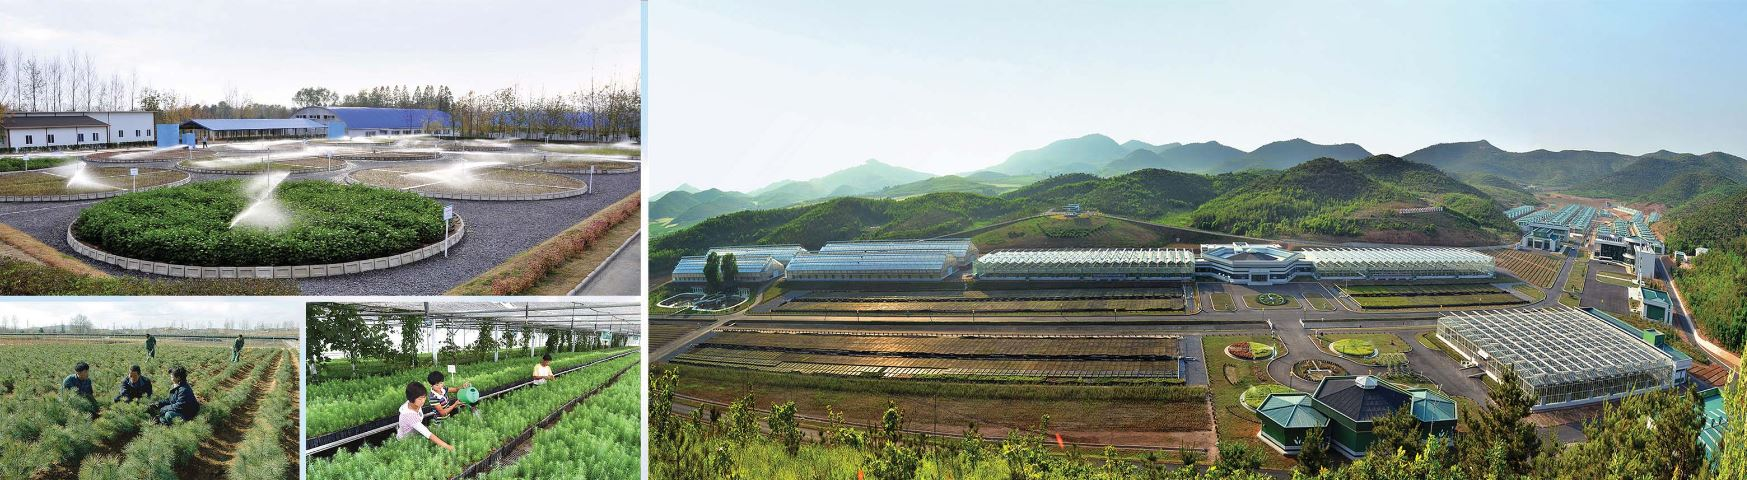 Tree Nursery No. 122 of the Korean People's Army and other tree nurseries built in all parts of the country ensure the solid material and technological foundations for sapling produ